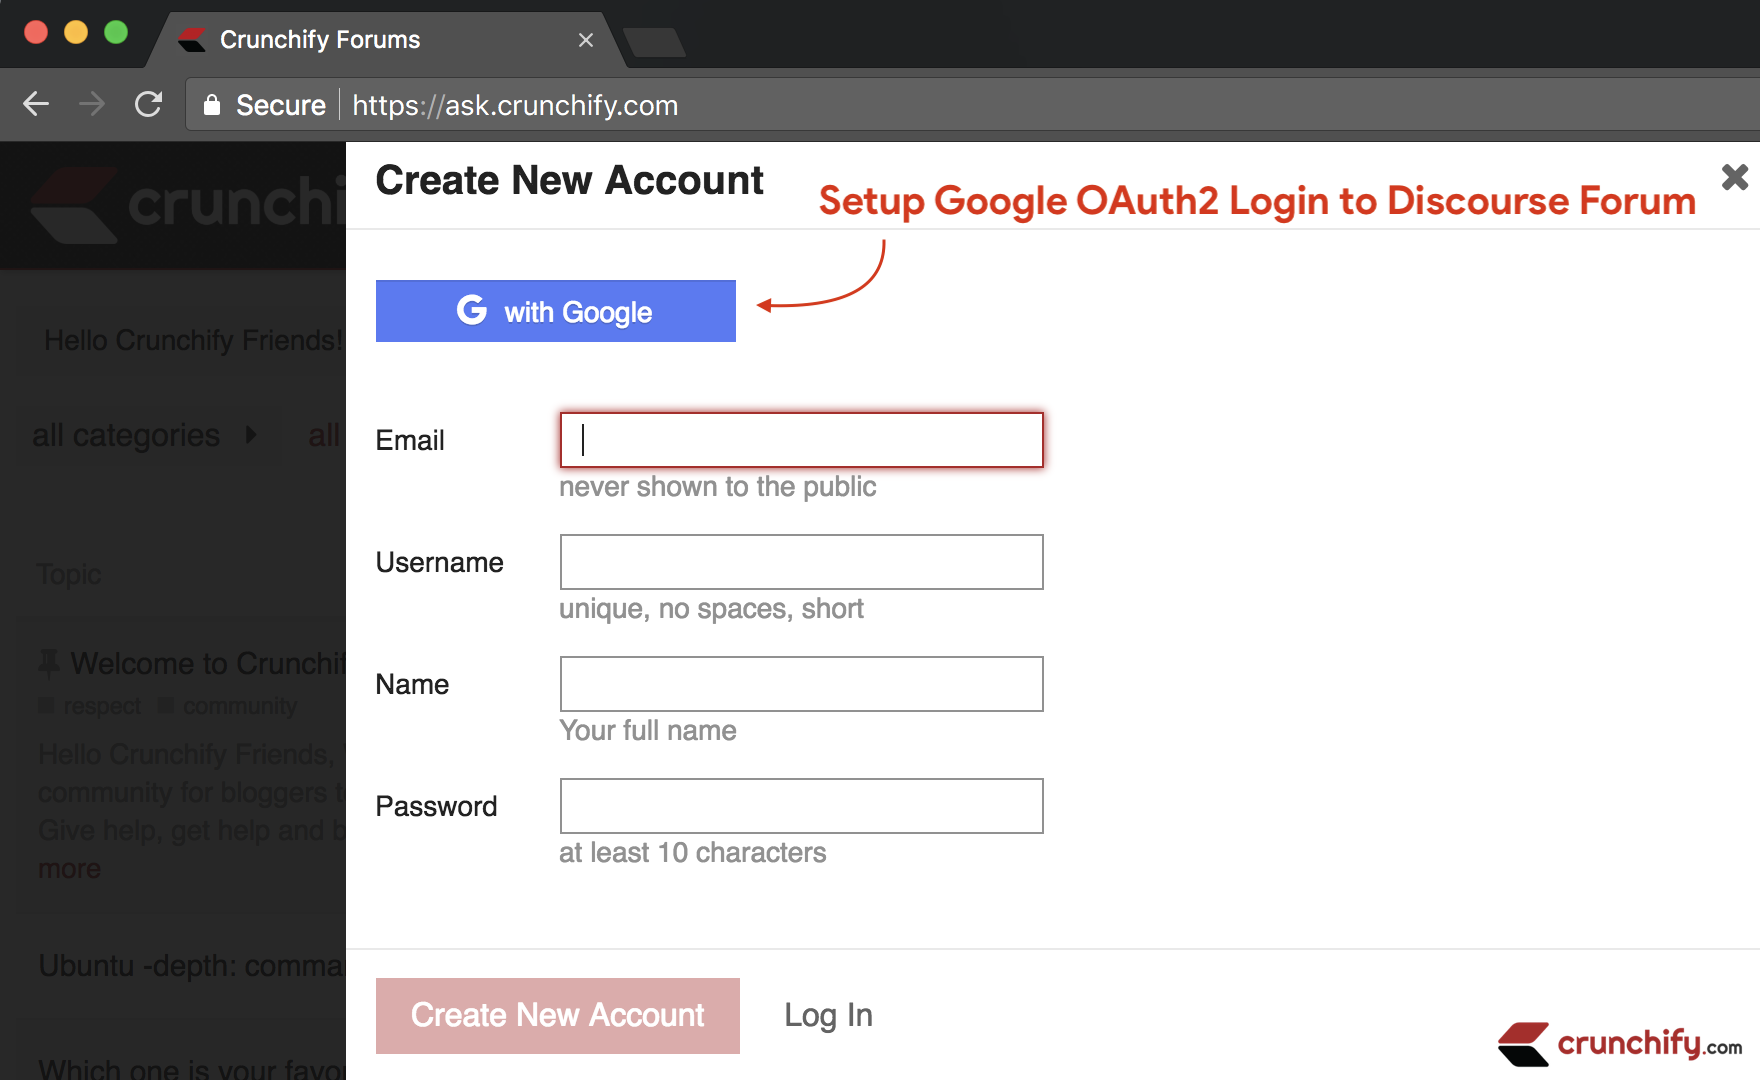 Setup Google OAuth2 Login to Discourse Forum